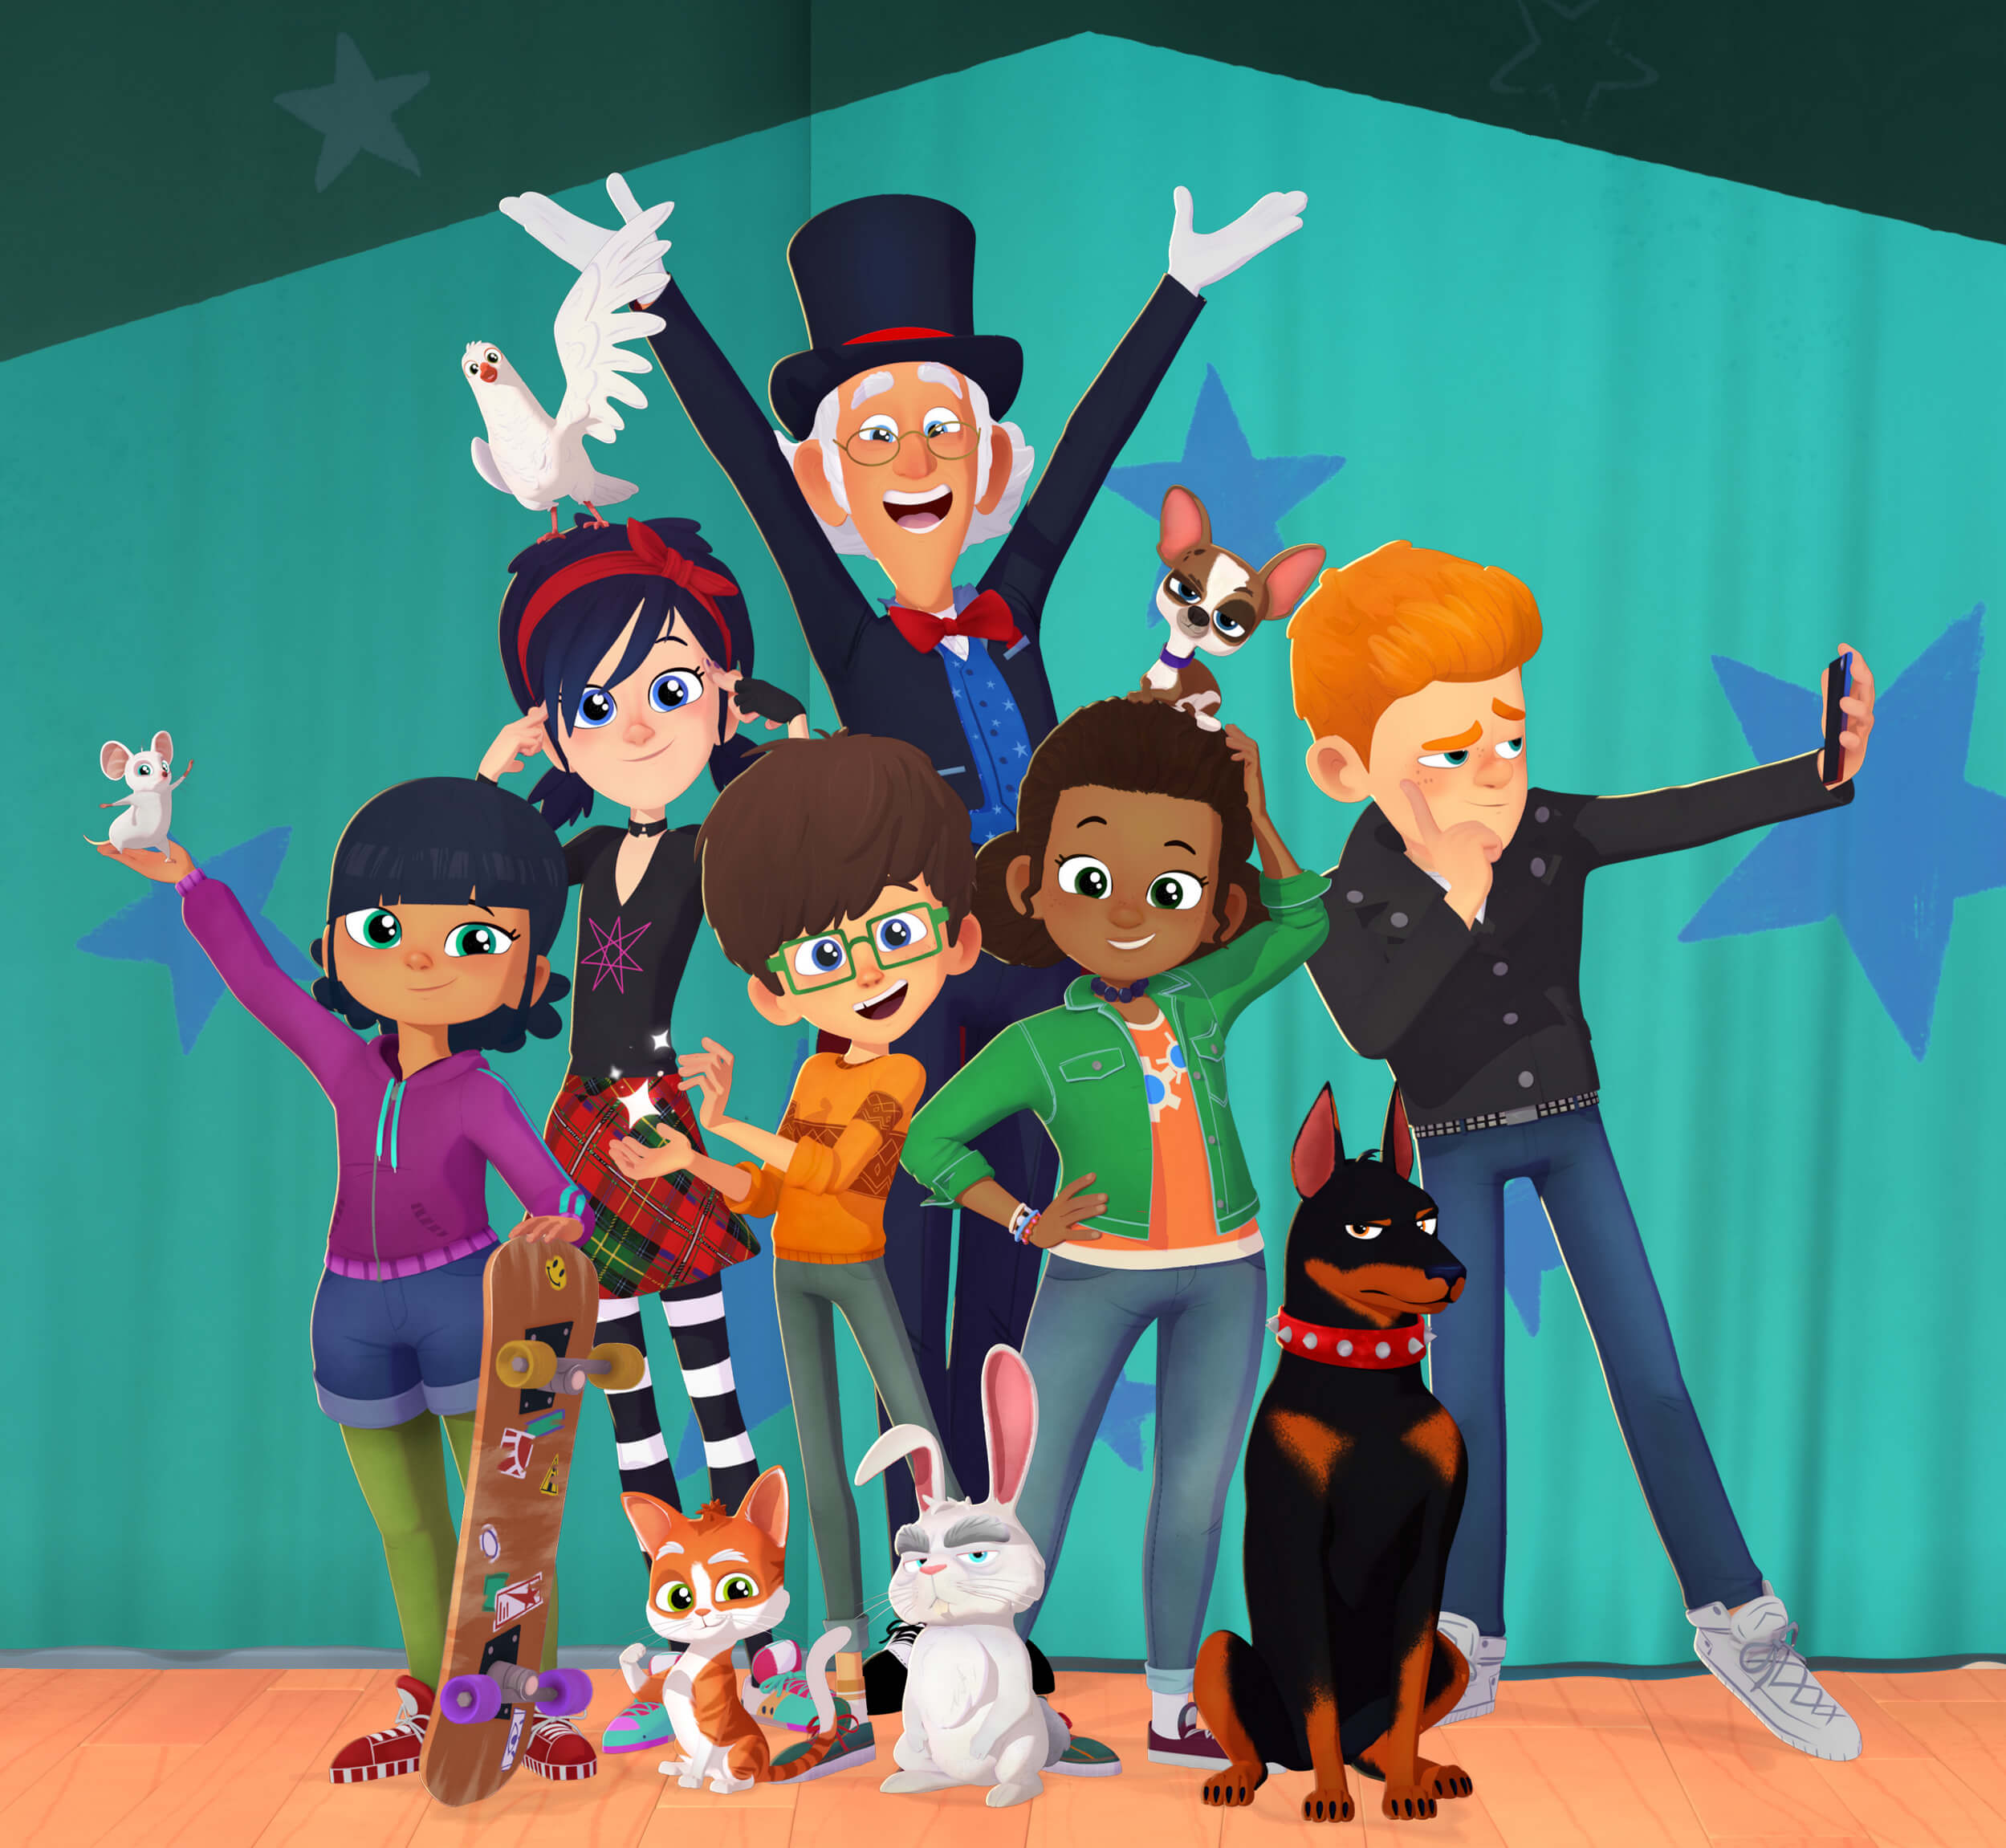 Federation Kids & Family partners with TeamTO on the mesmerising animated comedy 'Presto! School of Magic'